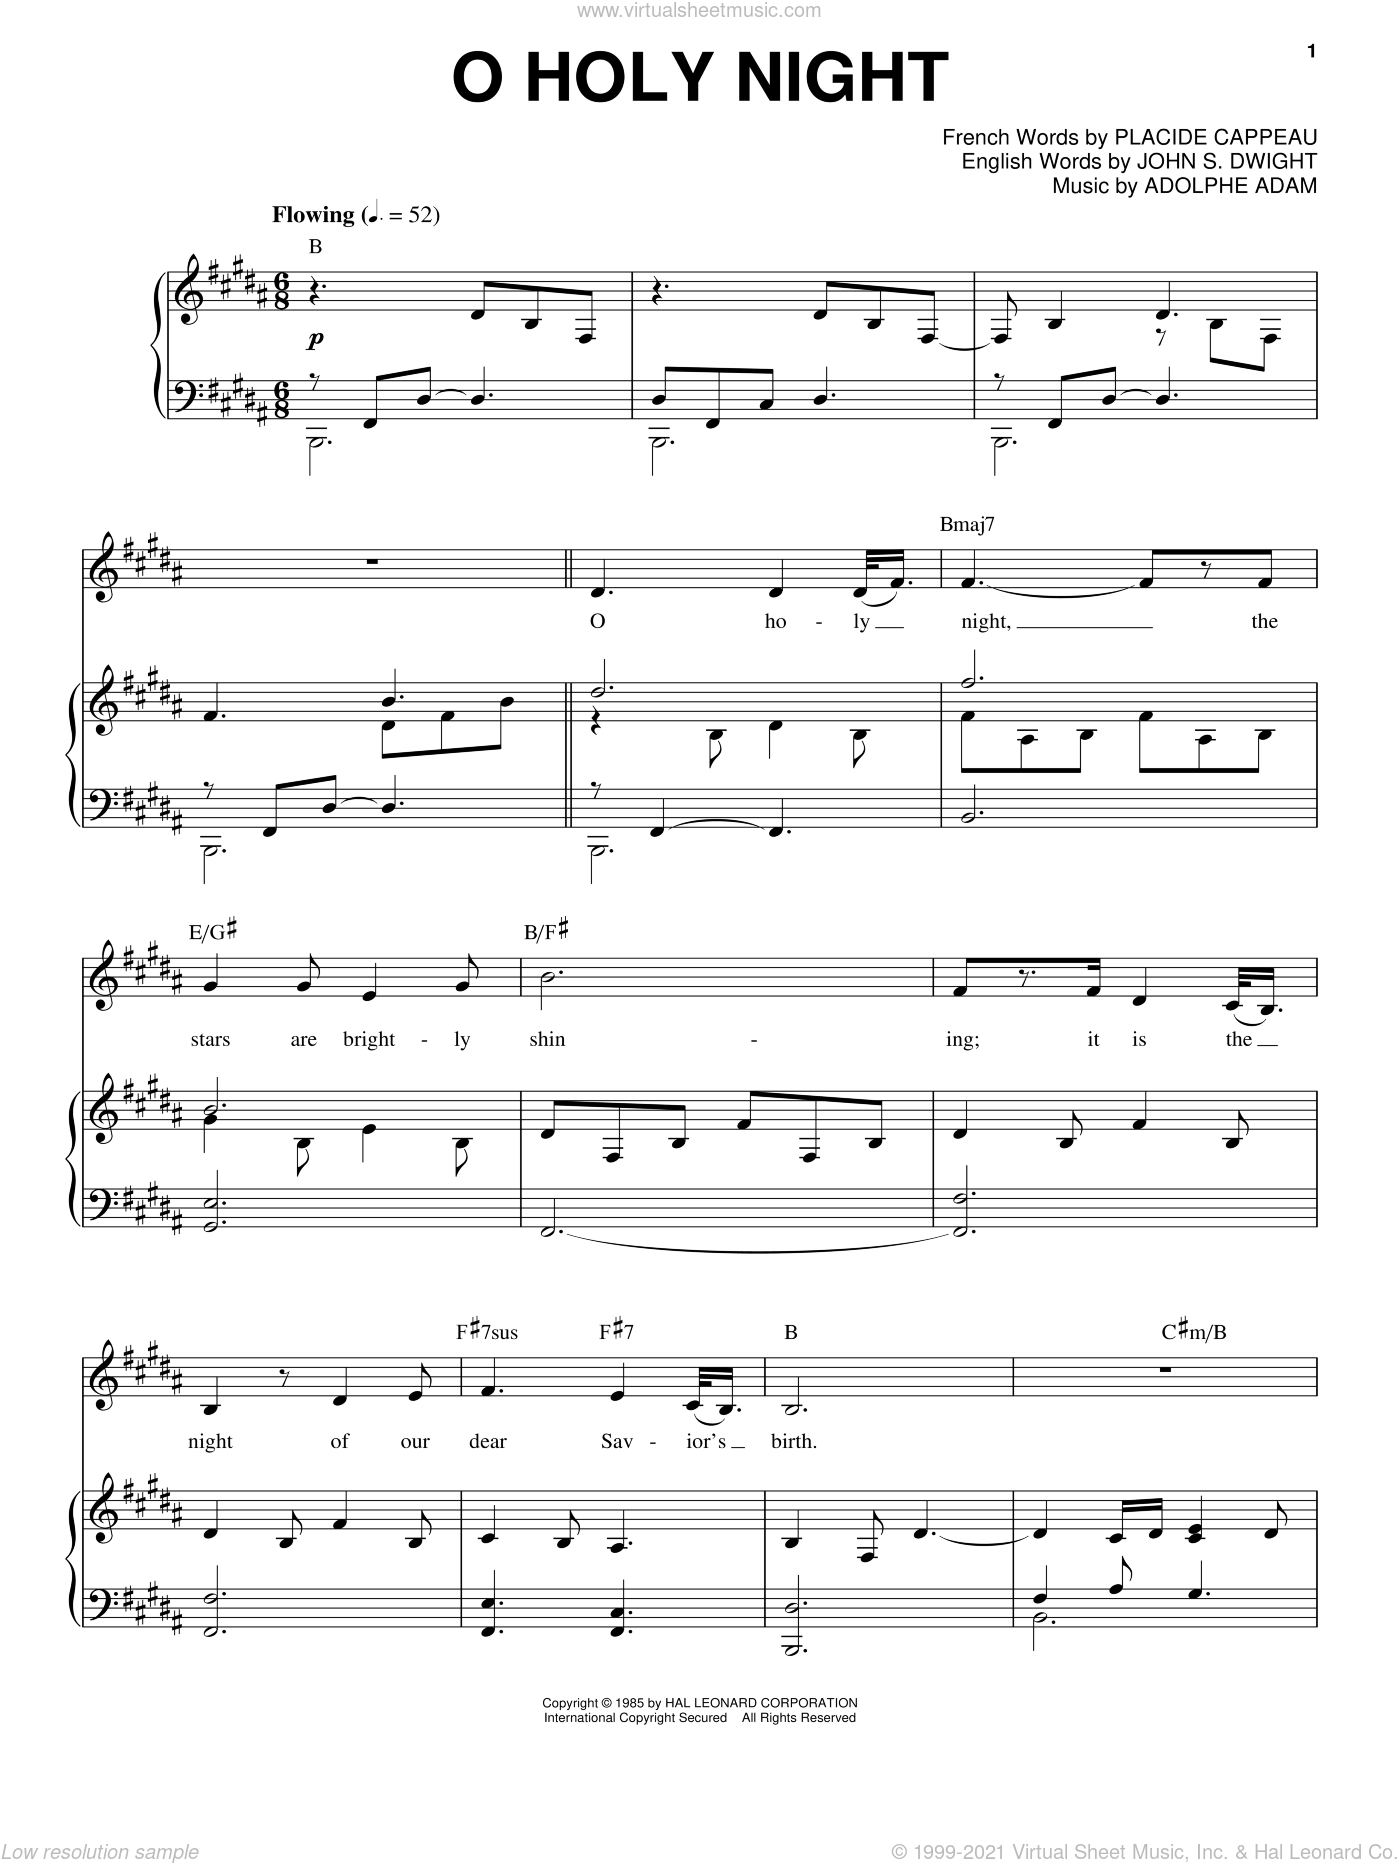 O Holy Night sheet music for voice and piano by Placide Cappeau